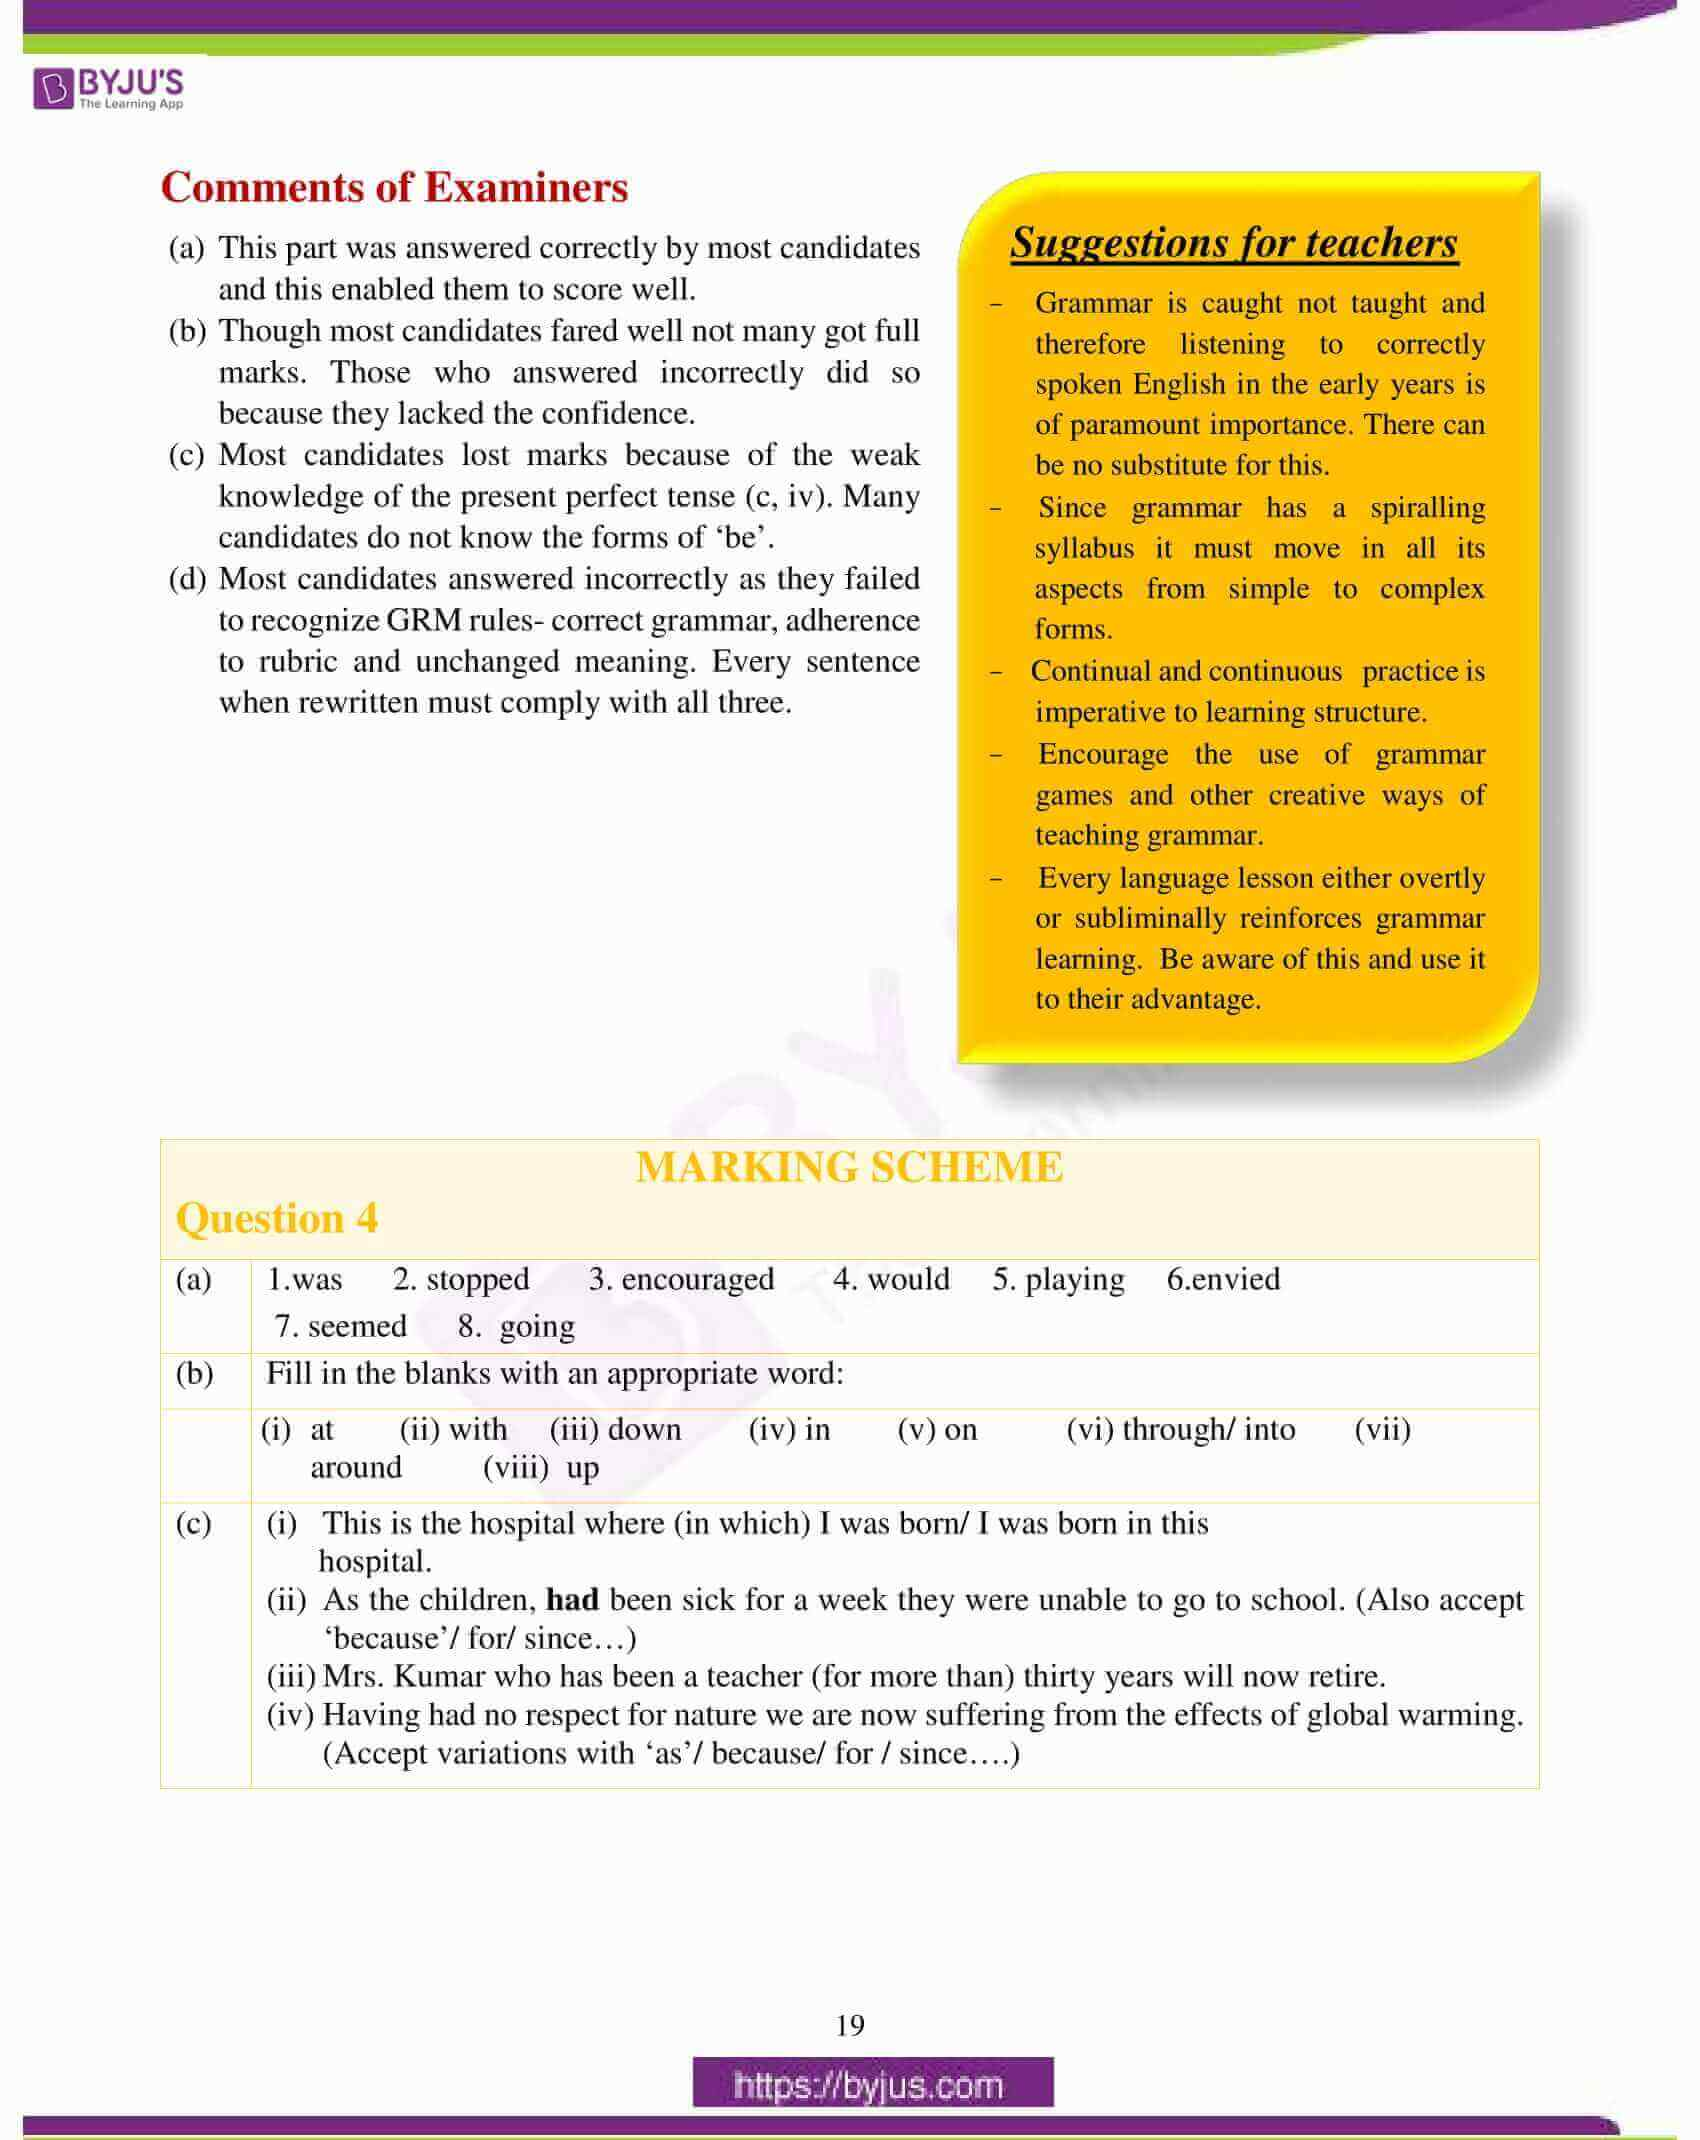 icse class 10 eng lan question paper solution 2017 10